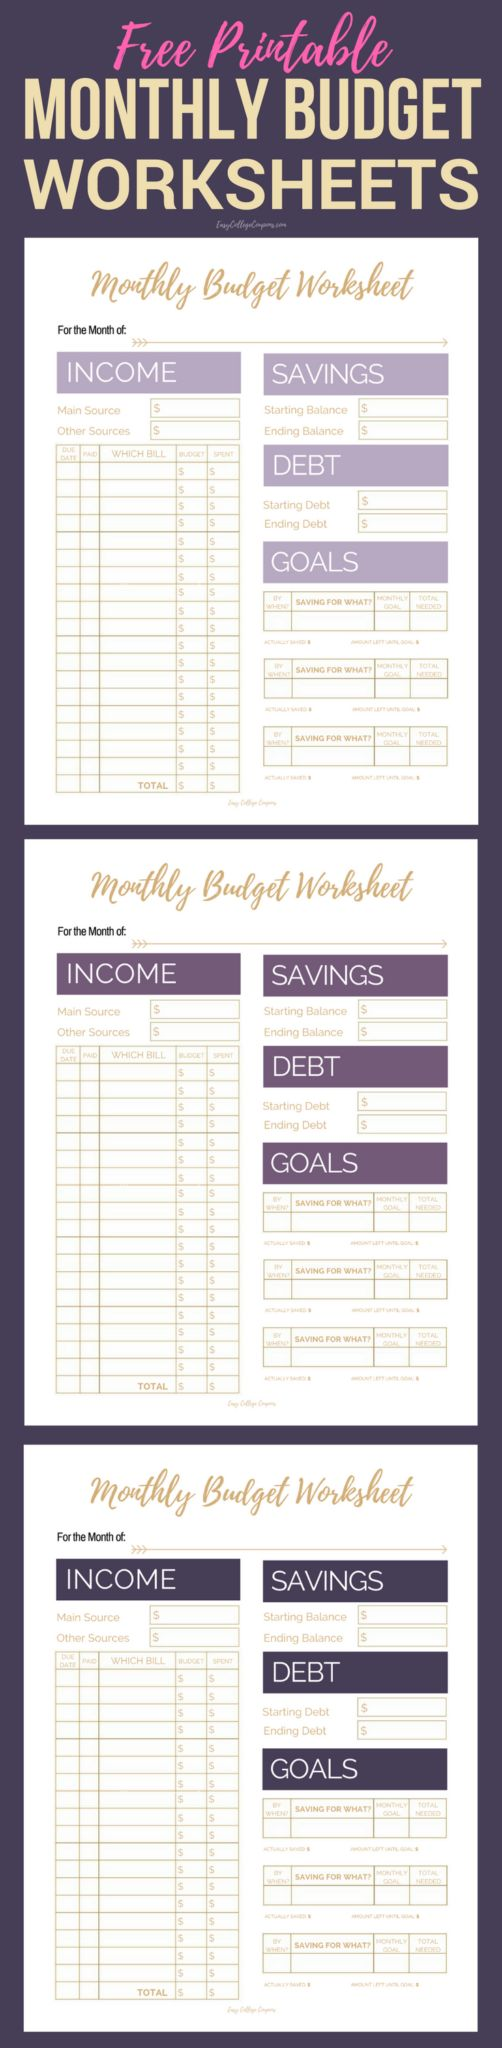 Worksheets Free Budget Planner Worksheet best 25 printable budget sheets ideas on pinterest monthly free worksheet planner simple college budgeting finance saving